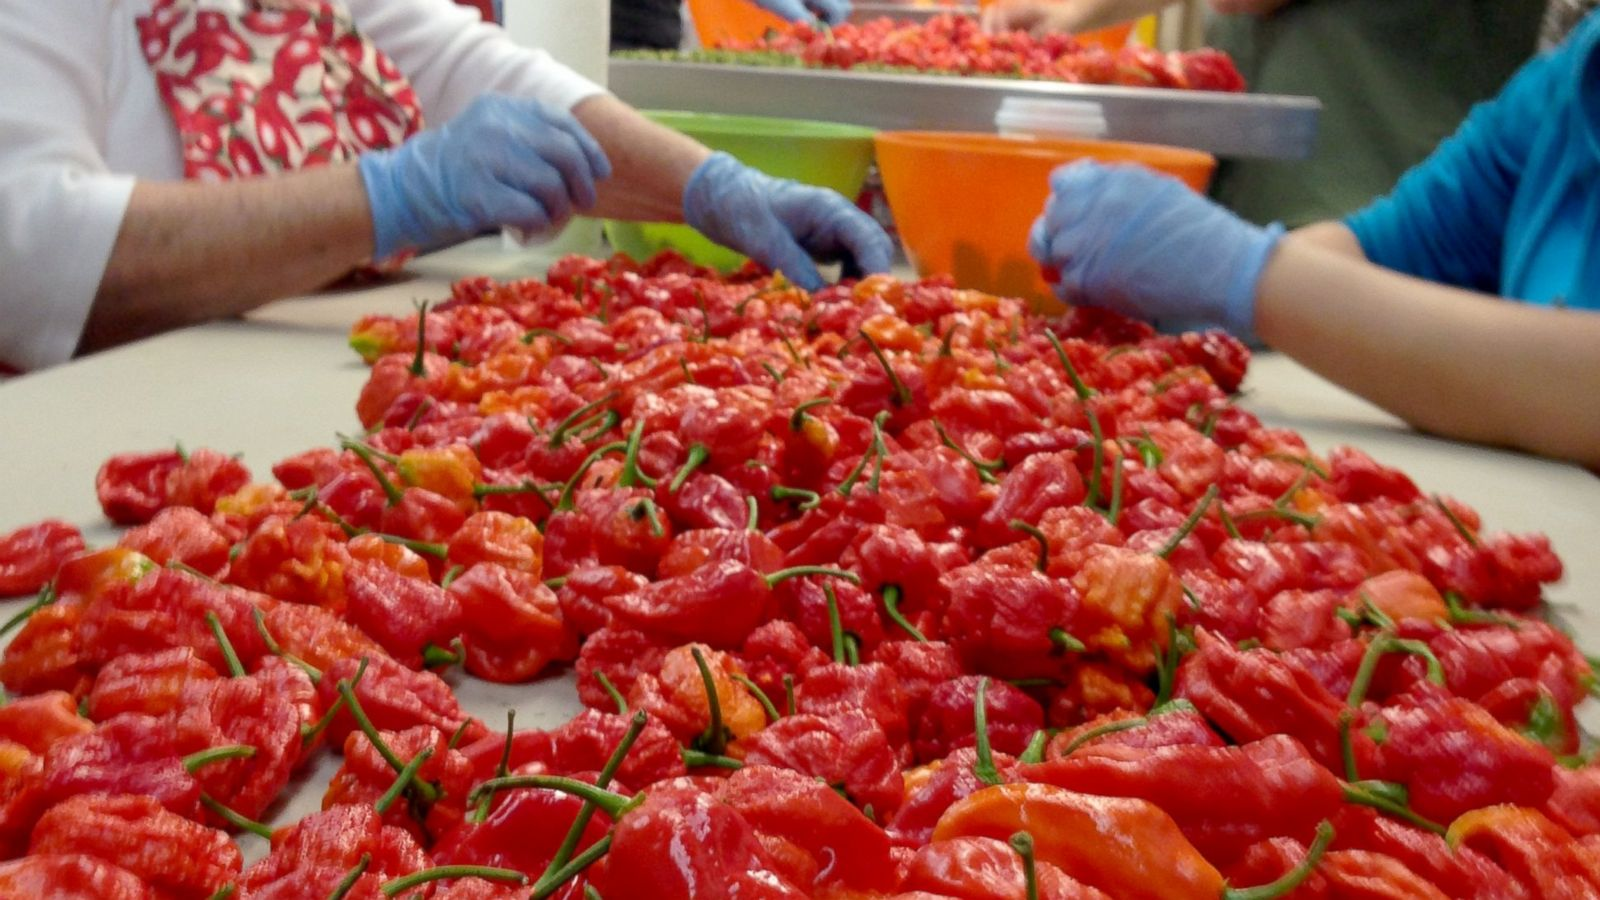 carolina reaper peppers are at least 100 times hotter than jalapeno